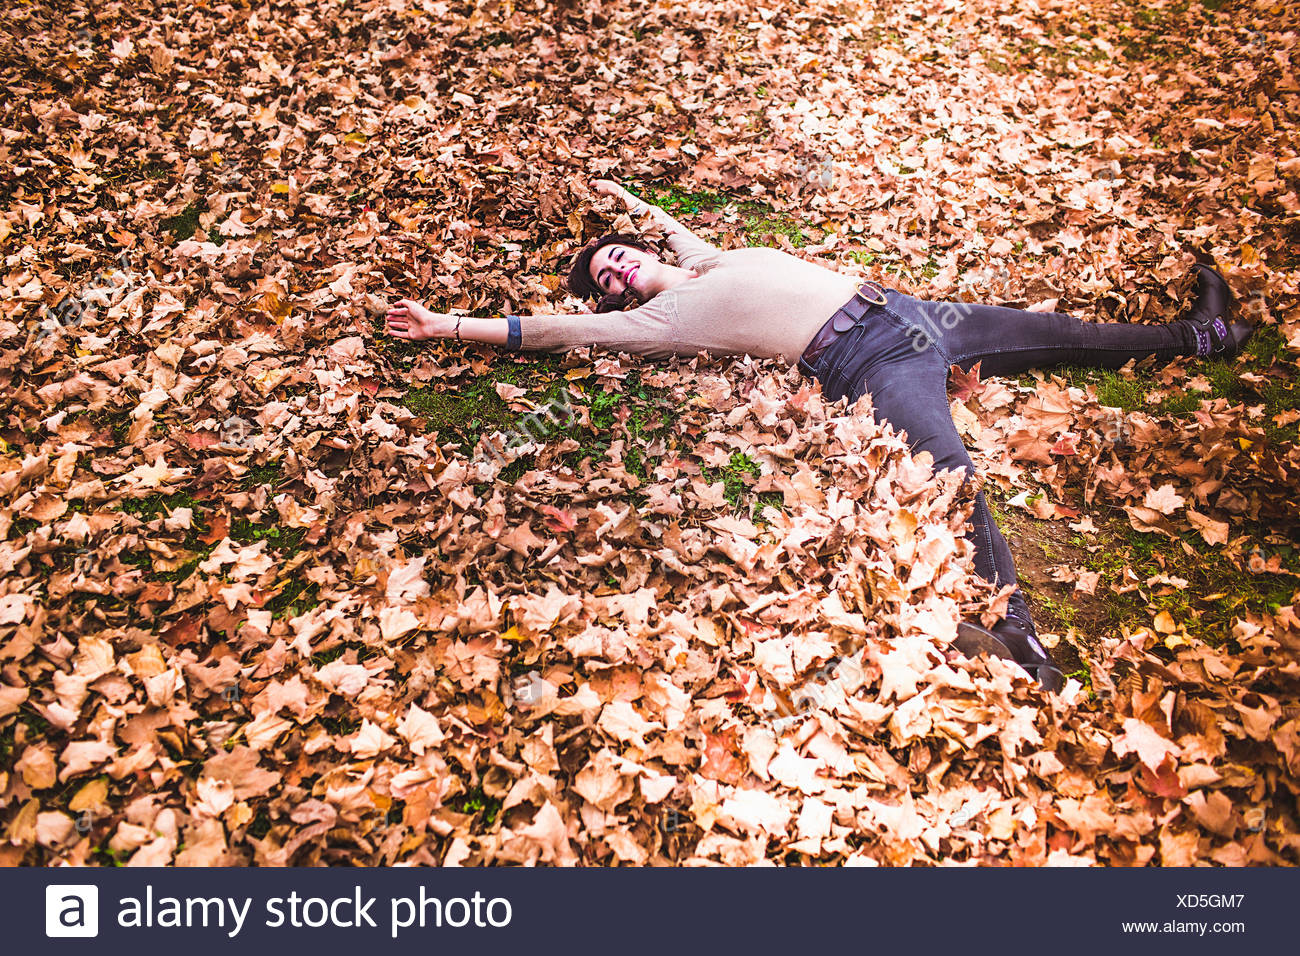 Overhead view of young woman lying on autumn leaves with arms and legs outstretched - Stock Image